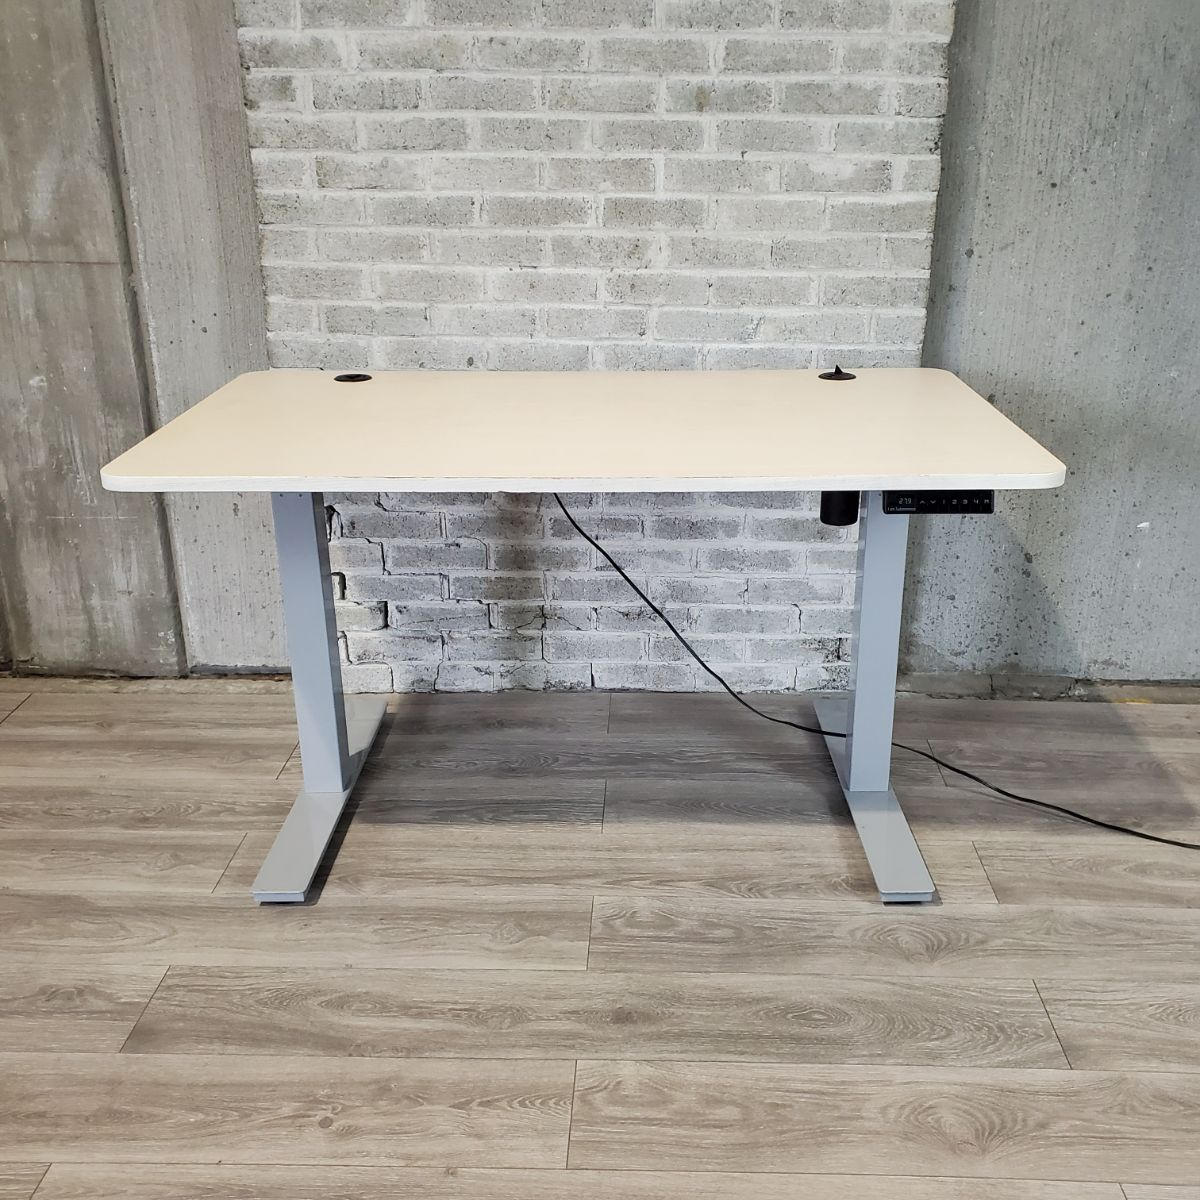 Pre-Owned - Used Electric Single Motor Height Adjustable Standing Desk - SILVER BASE/ WHITE OAK TOP - Duckys Office Furniture